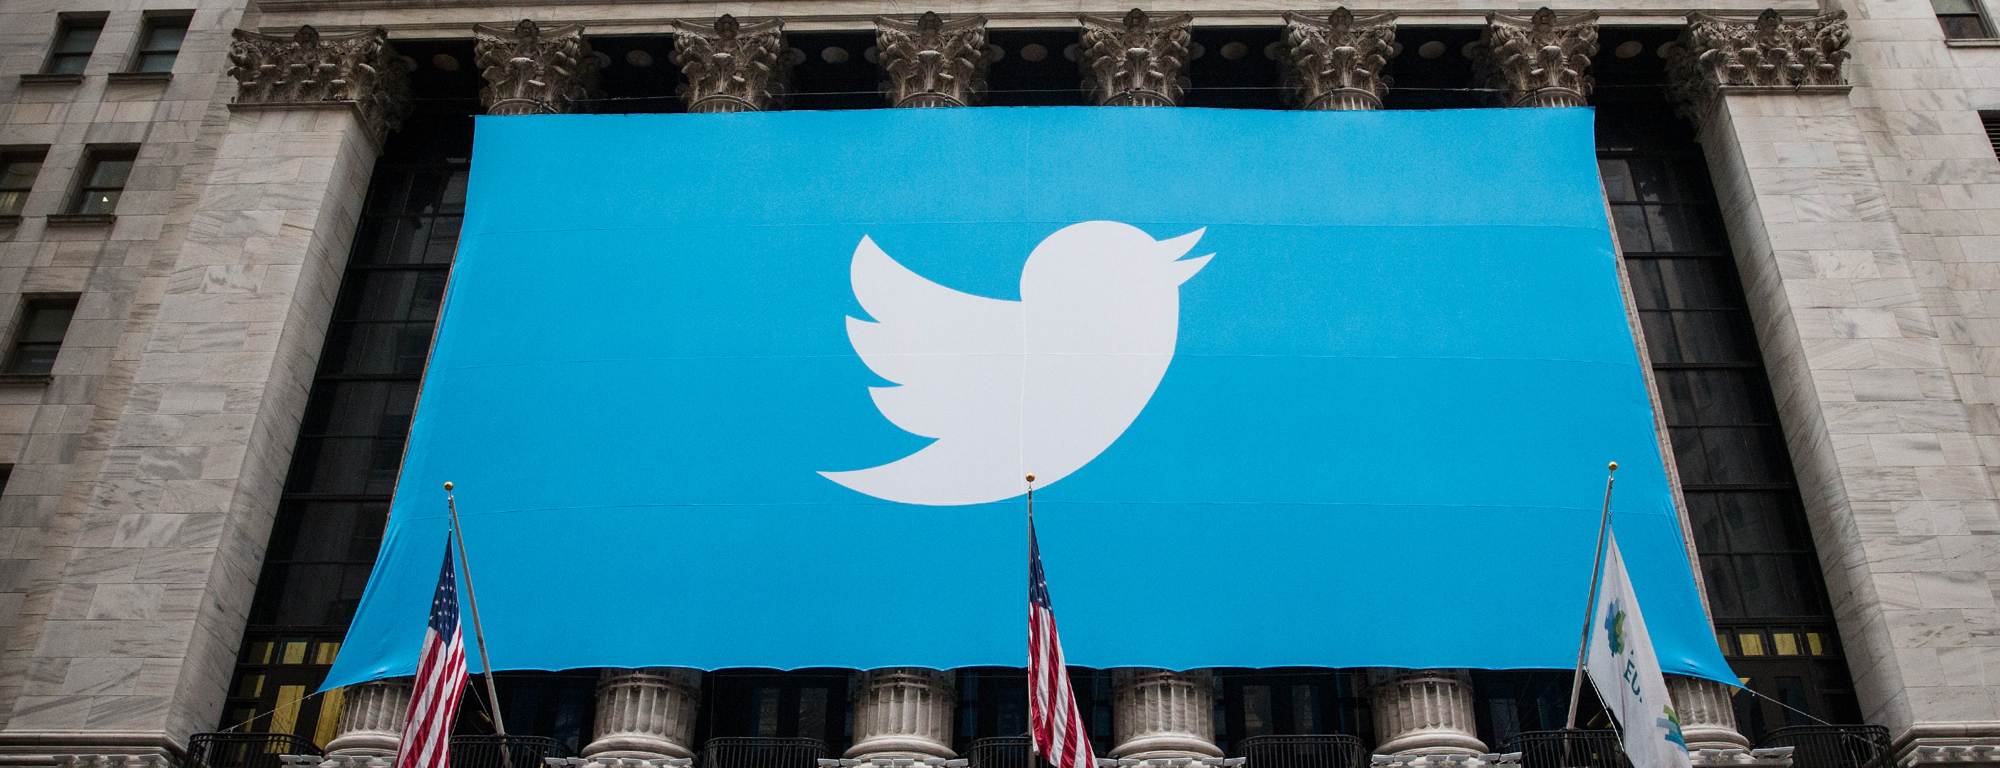 Twitter will launch its TV ratings service in Europe this year